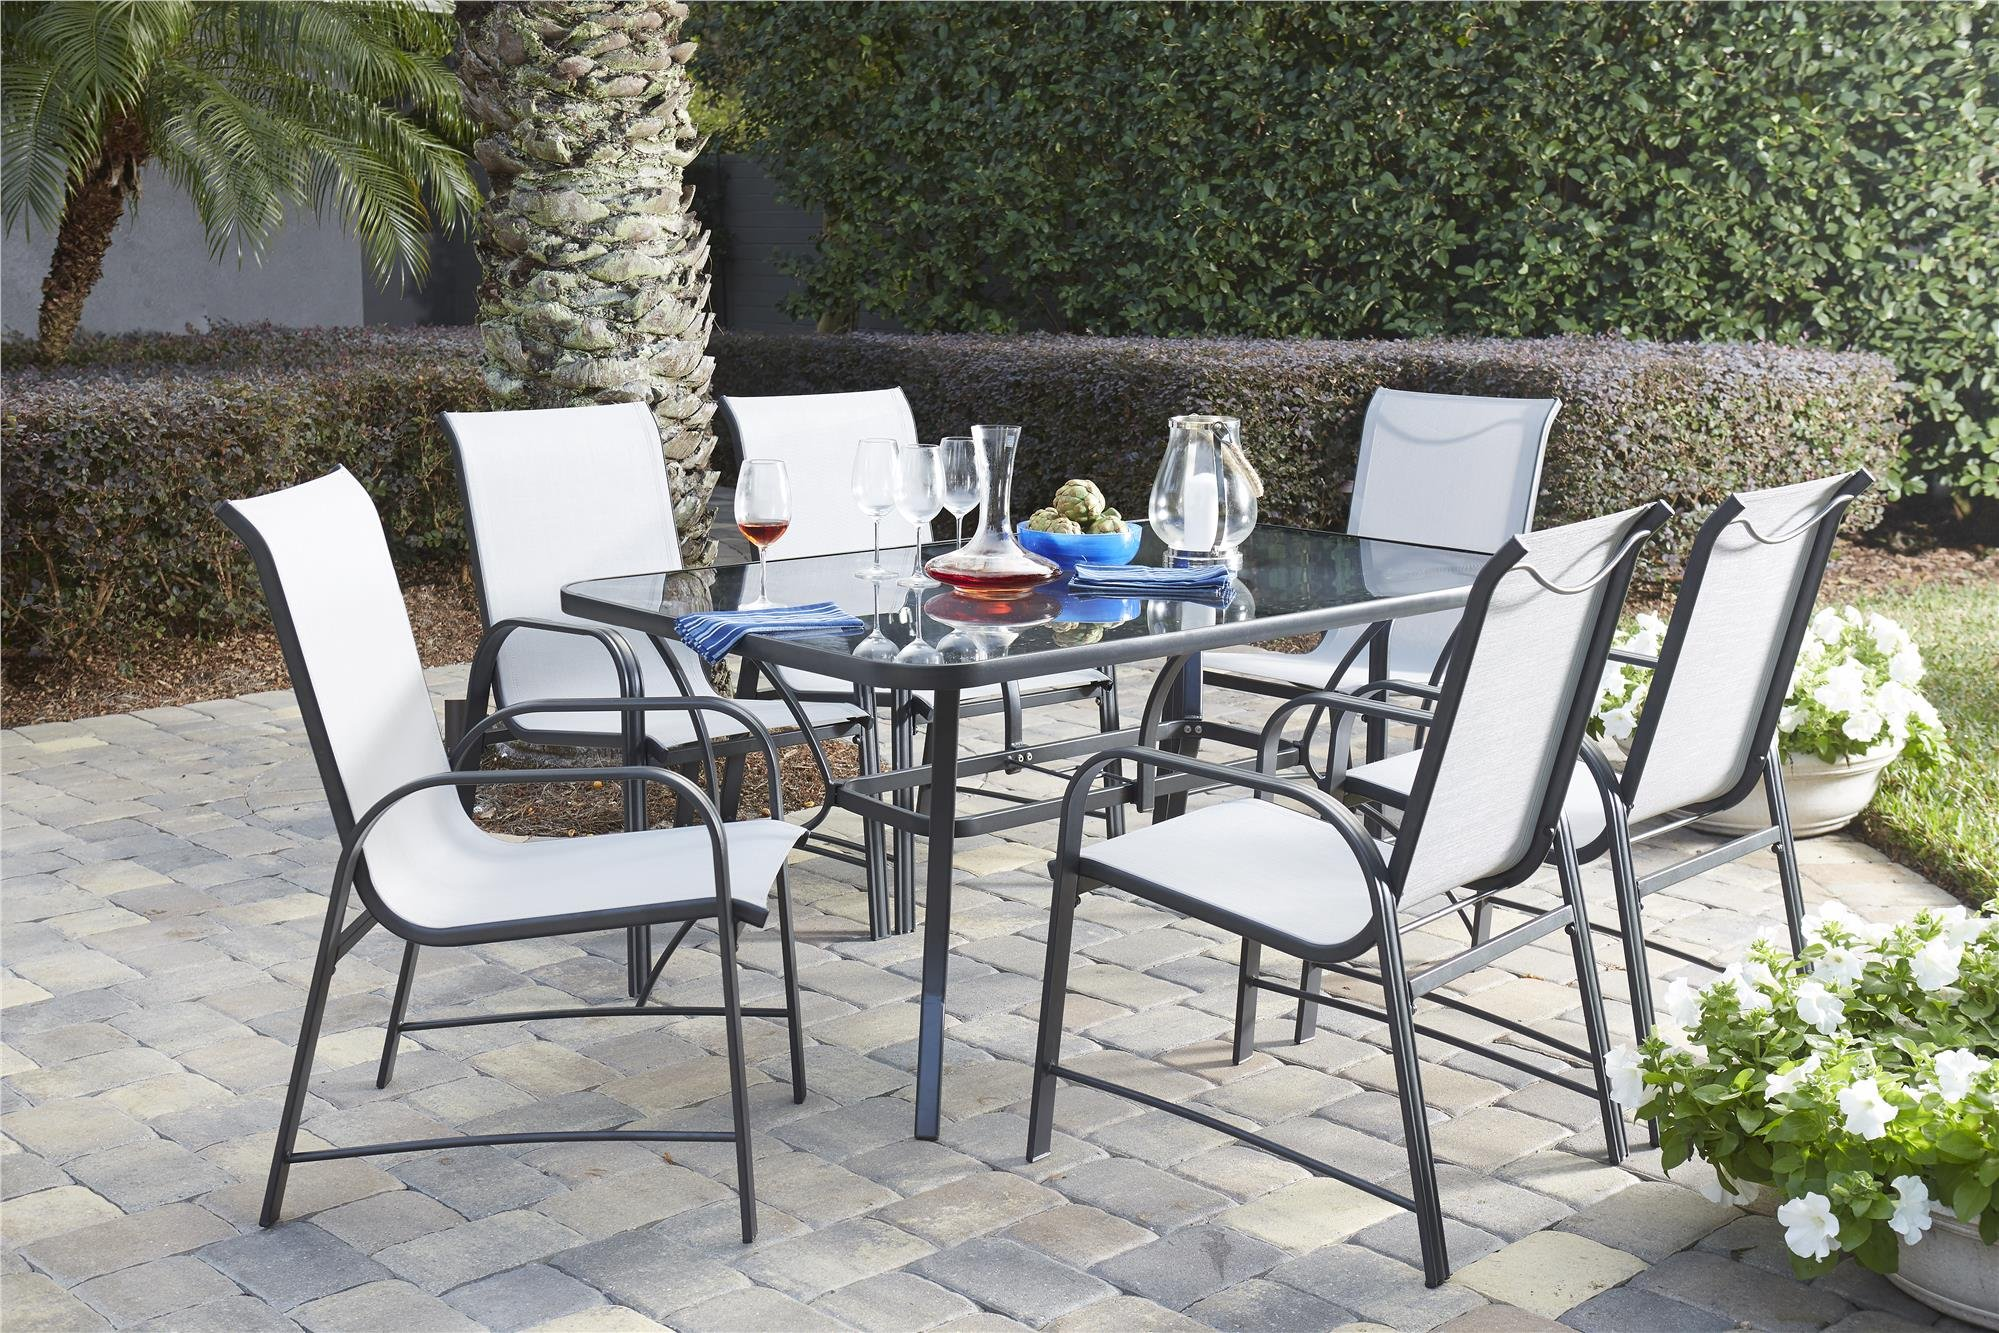 COSCO 88647GLGE Outdoor Living 7 Piece Paloma Steel Patio Dining Set, Light/Dark Gray